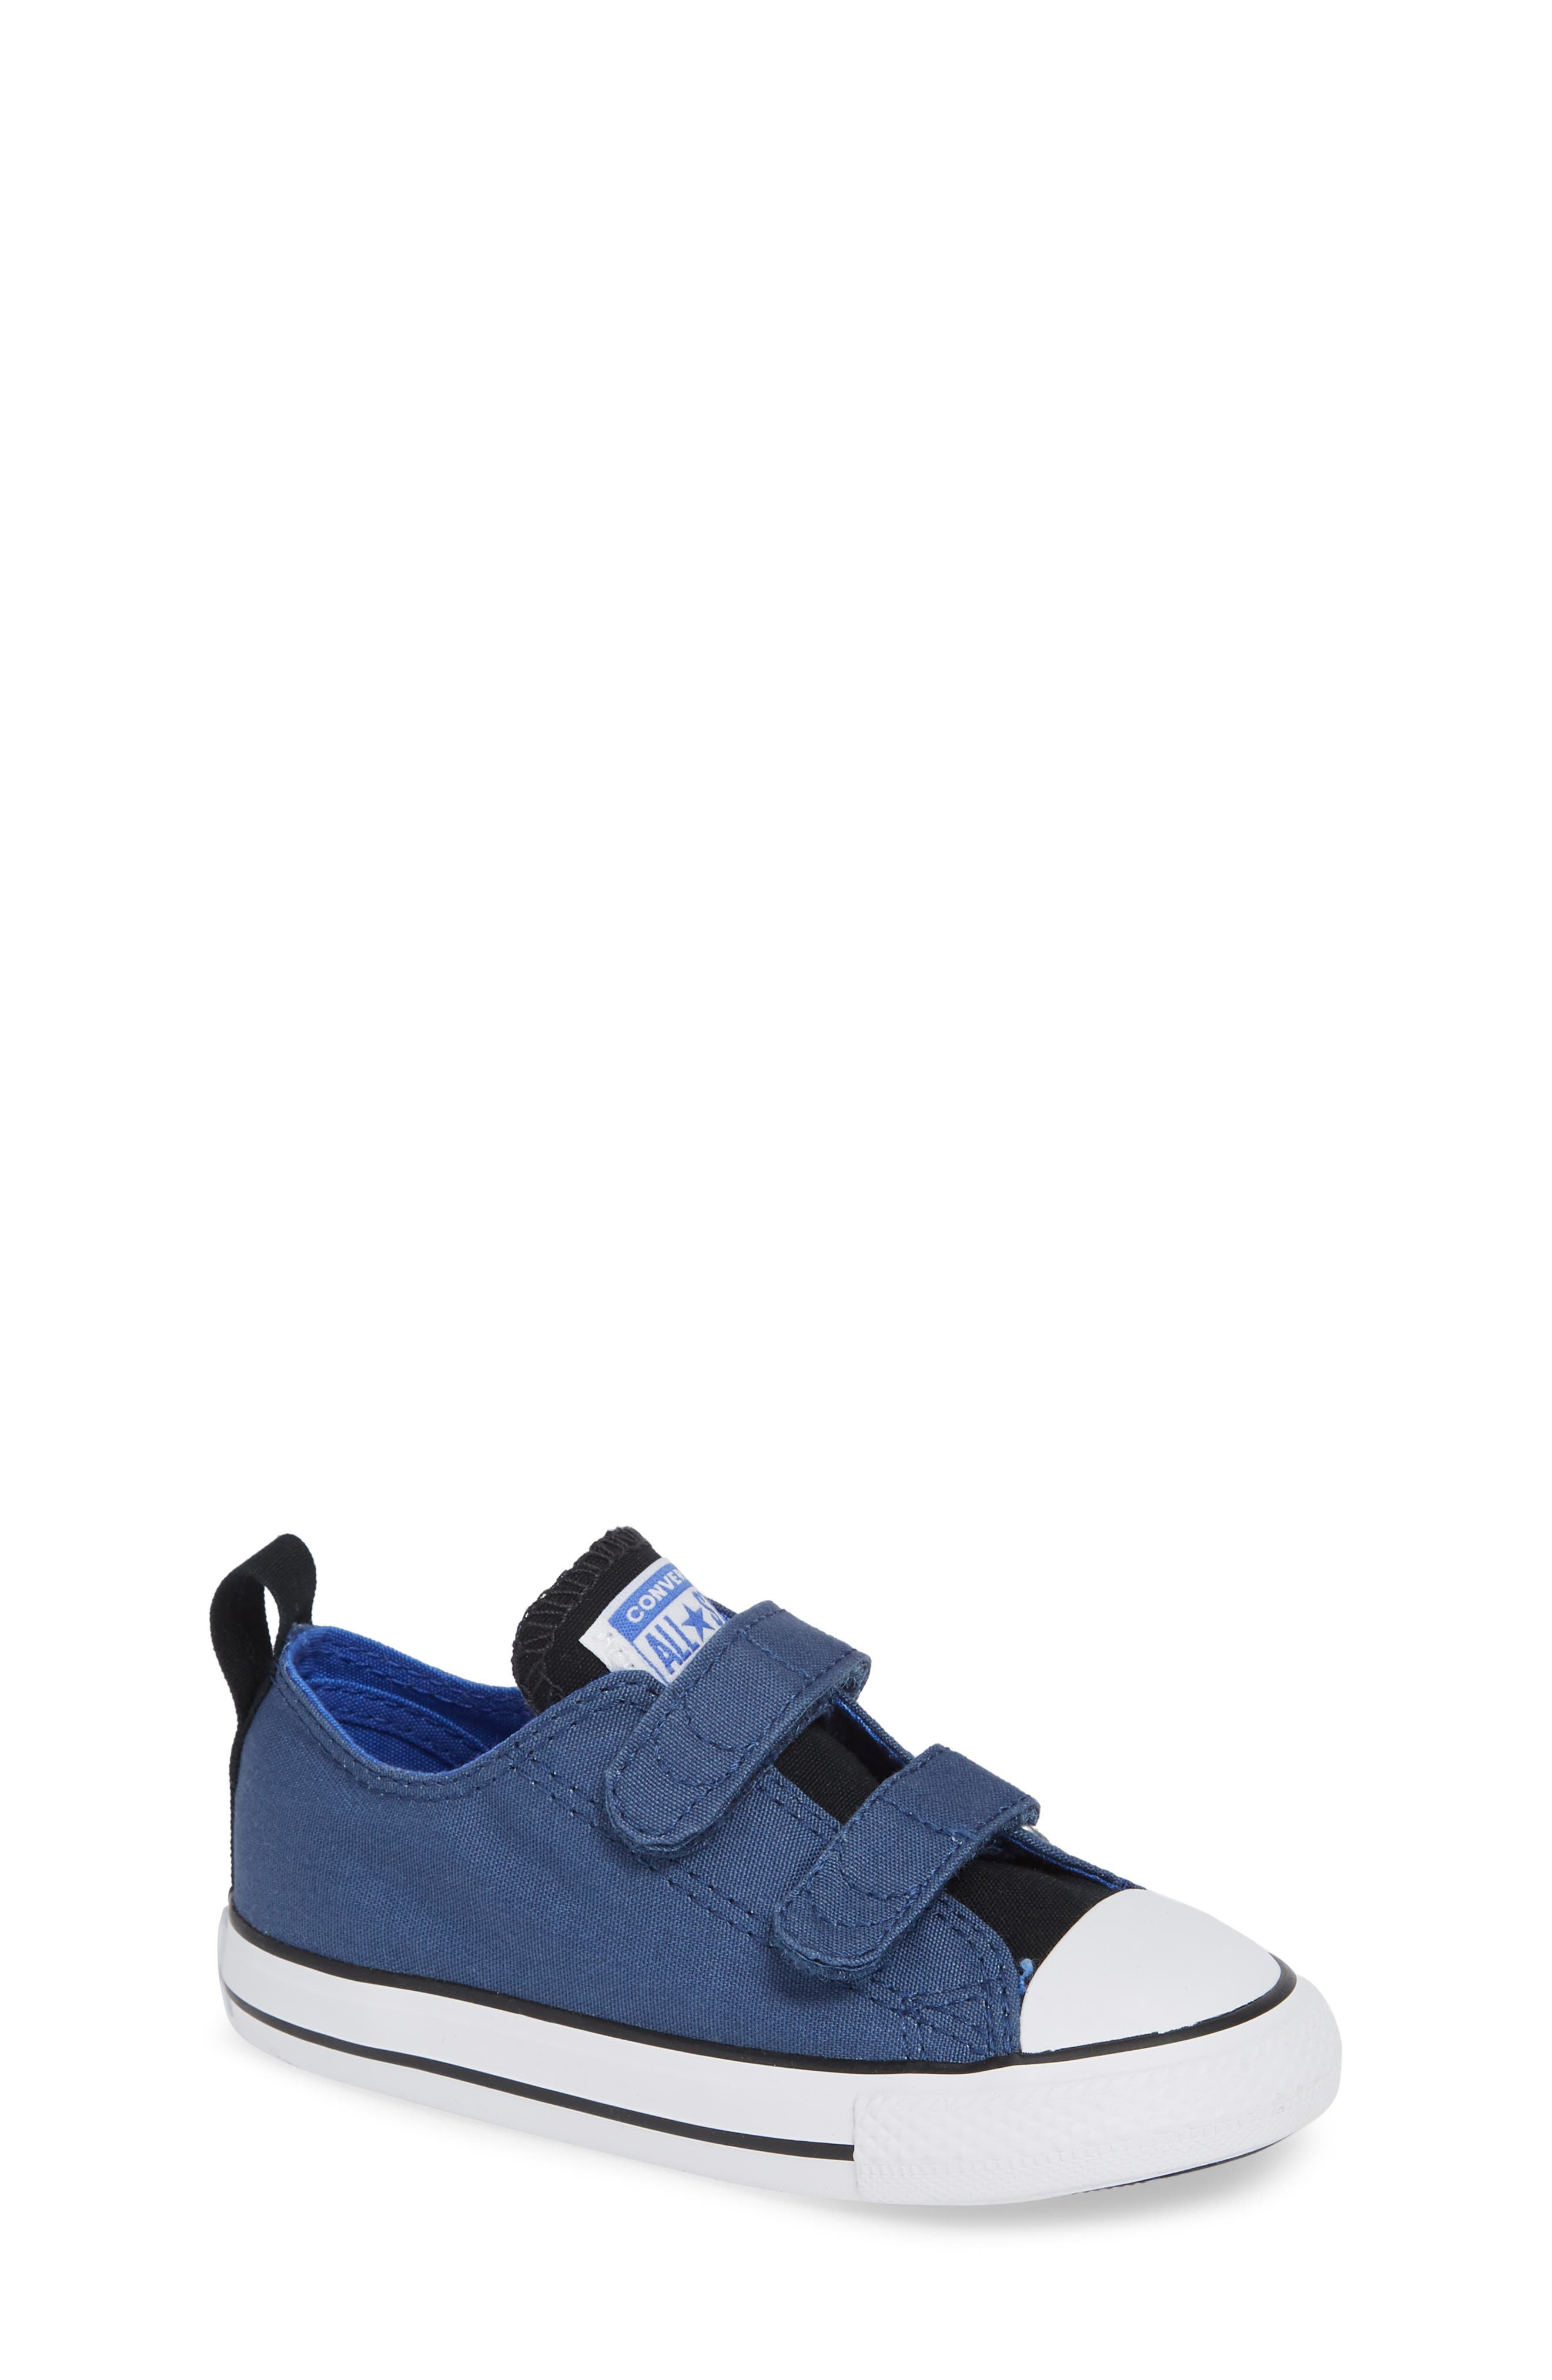 Chuck Taylor<sup>®</sup> 'Double Strap' Sneaker,                         Main,                         color, MASON BLUE